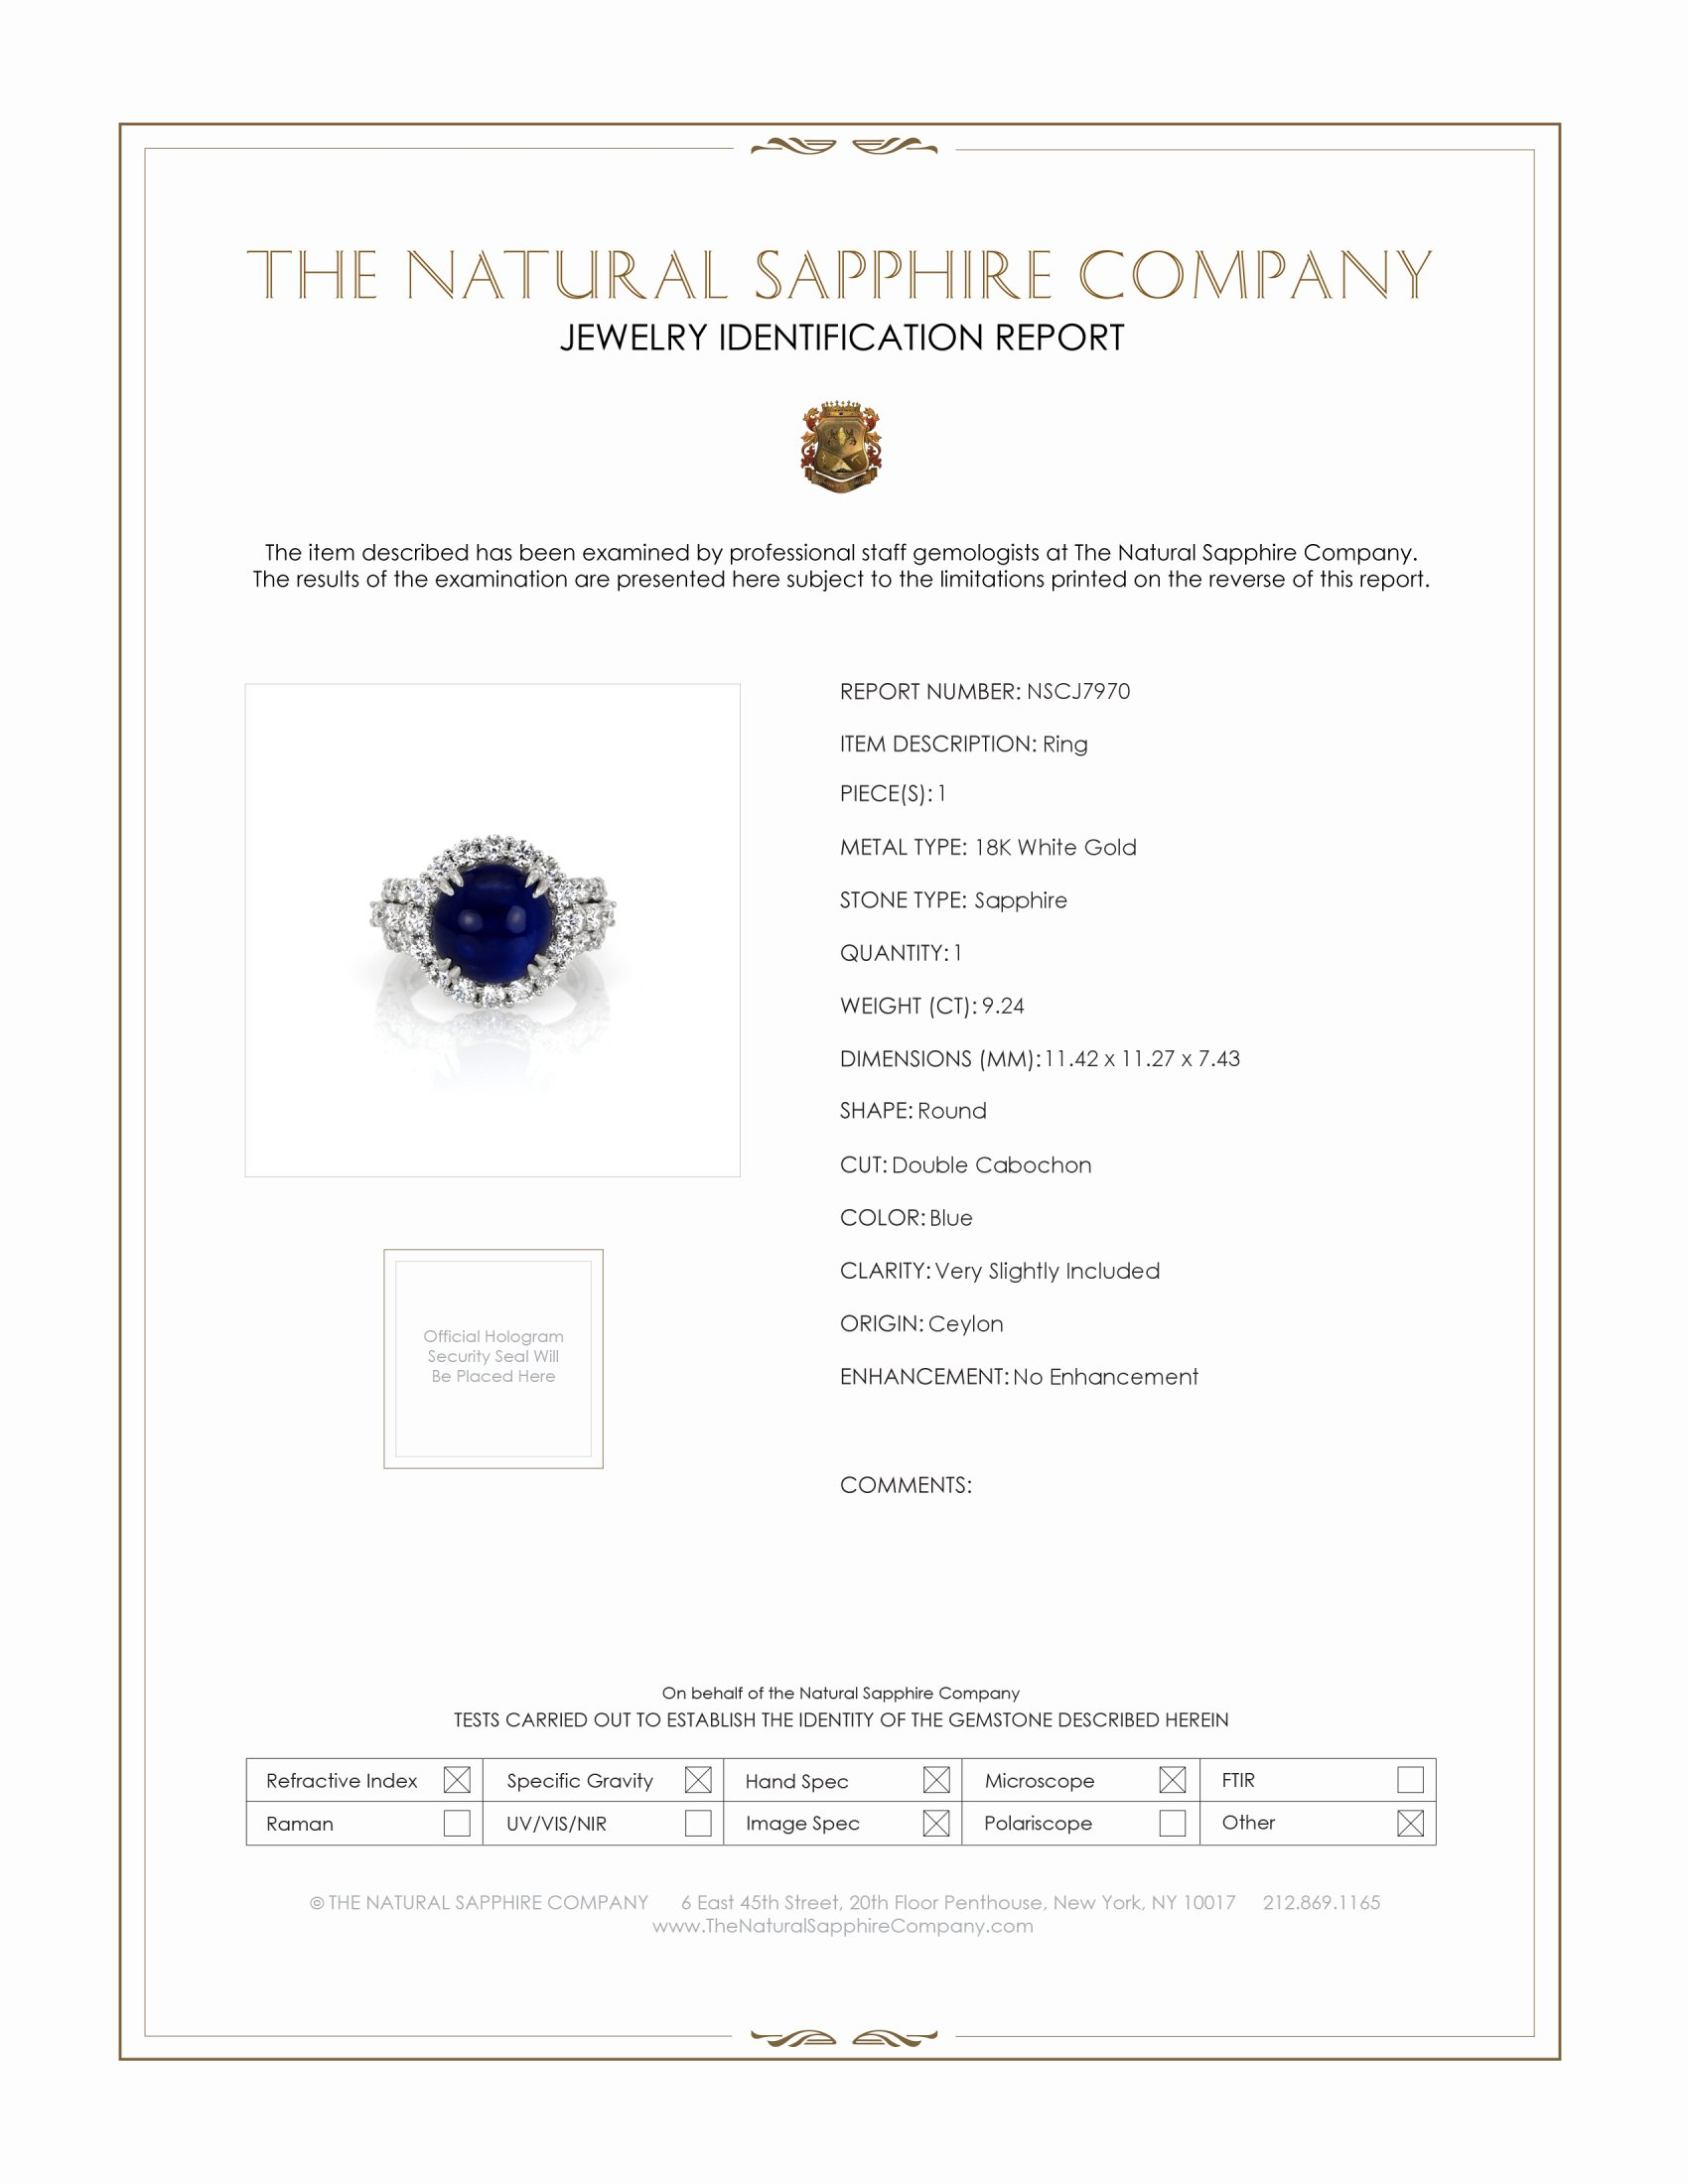 9.24ct Blue Sapphire Ring Certification